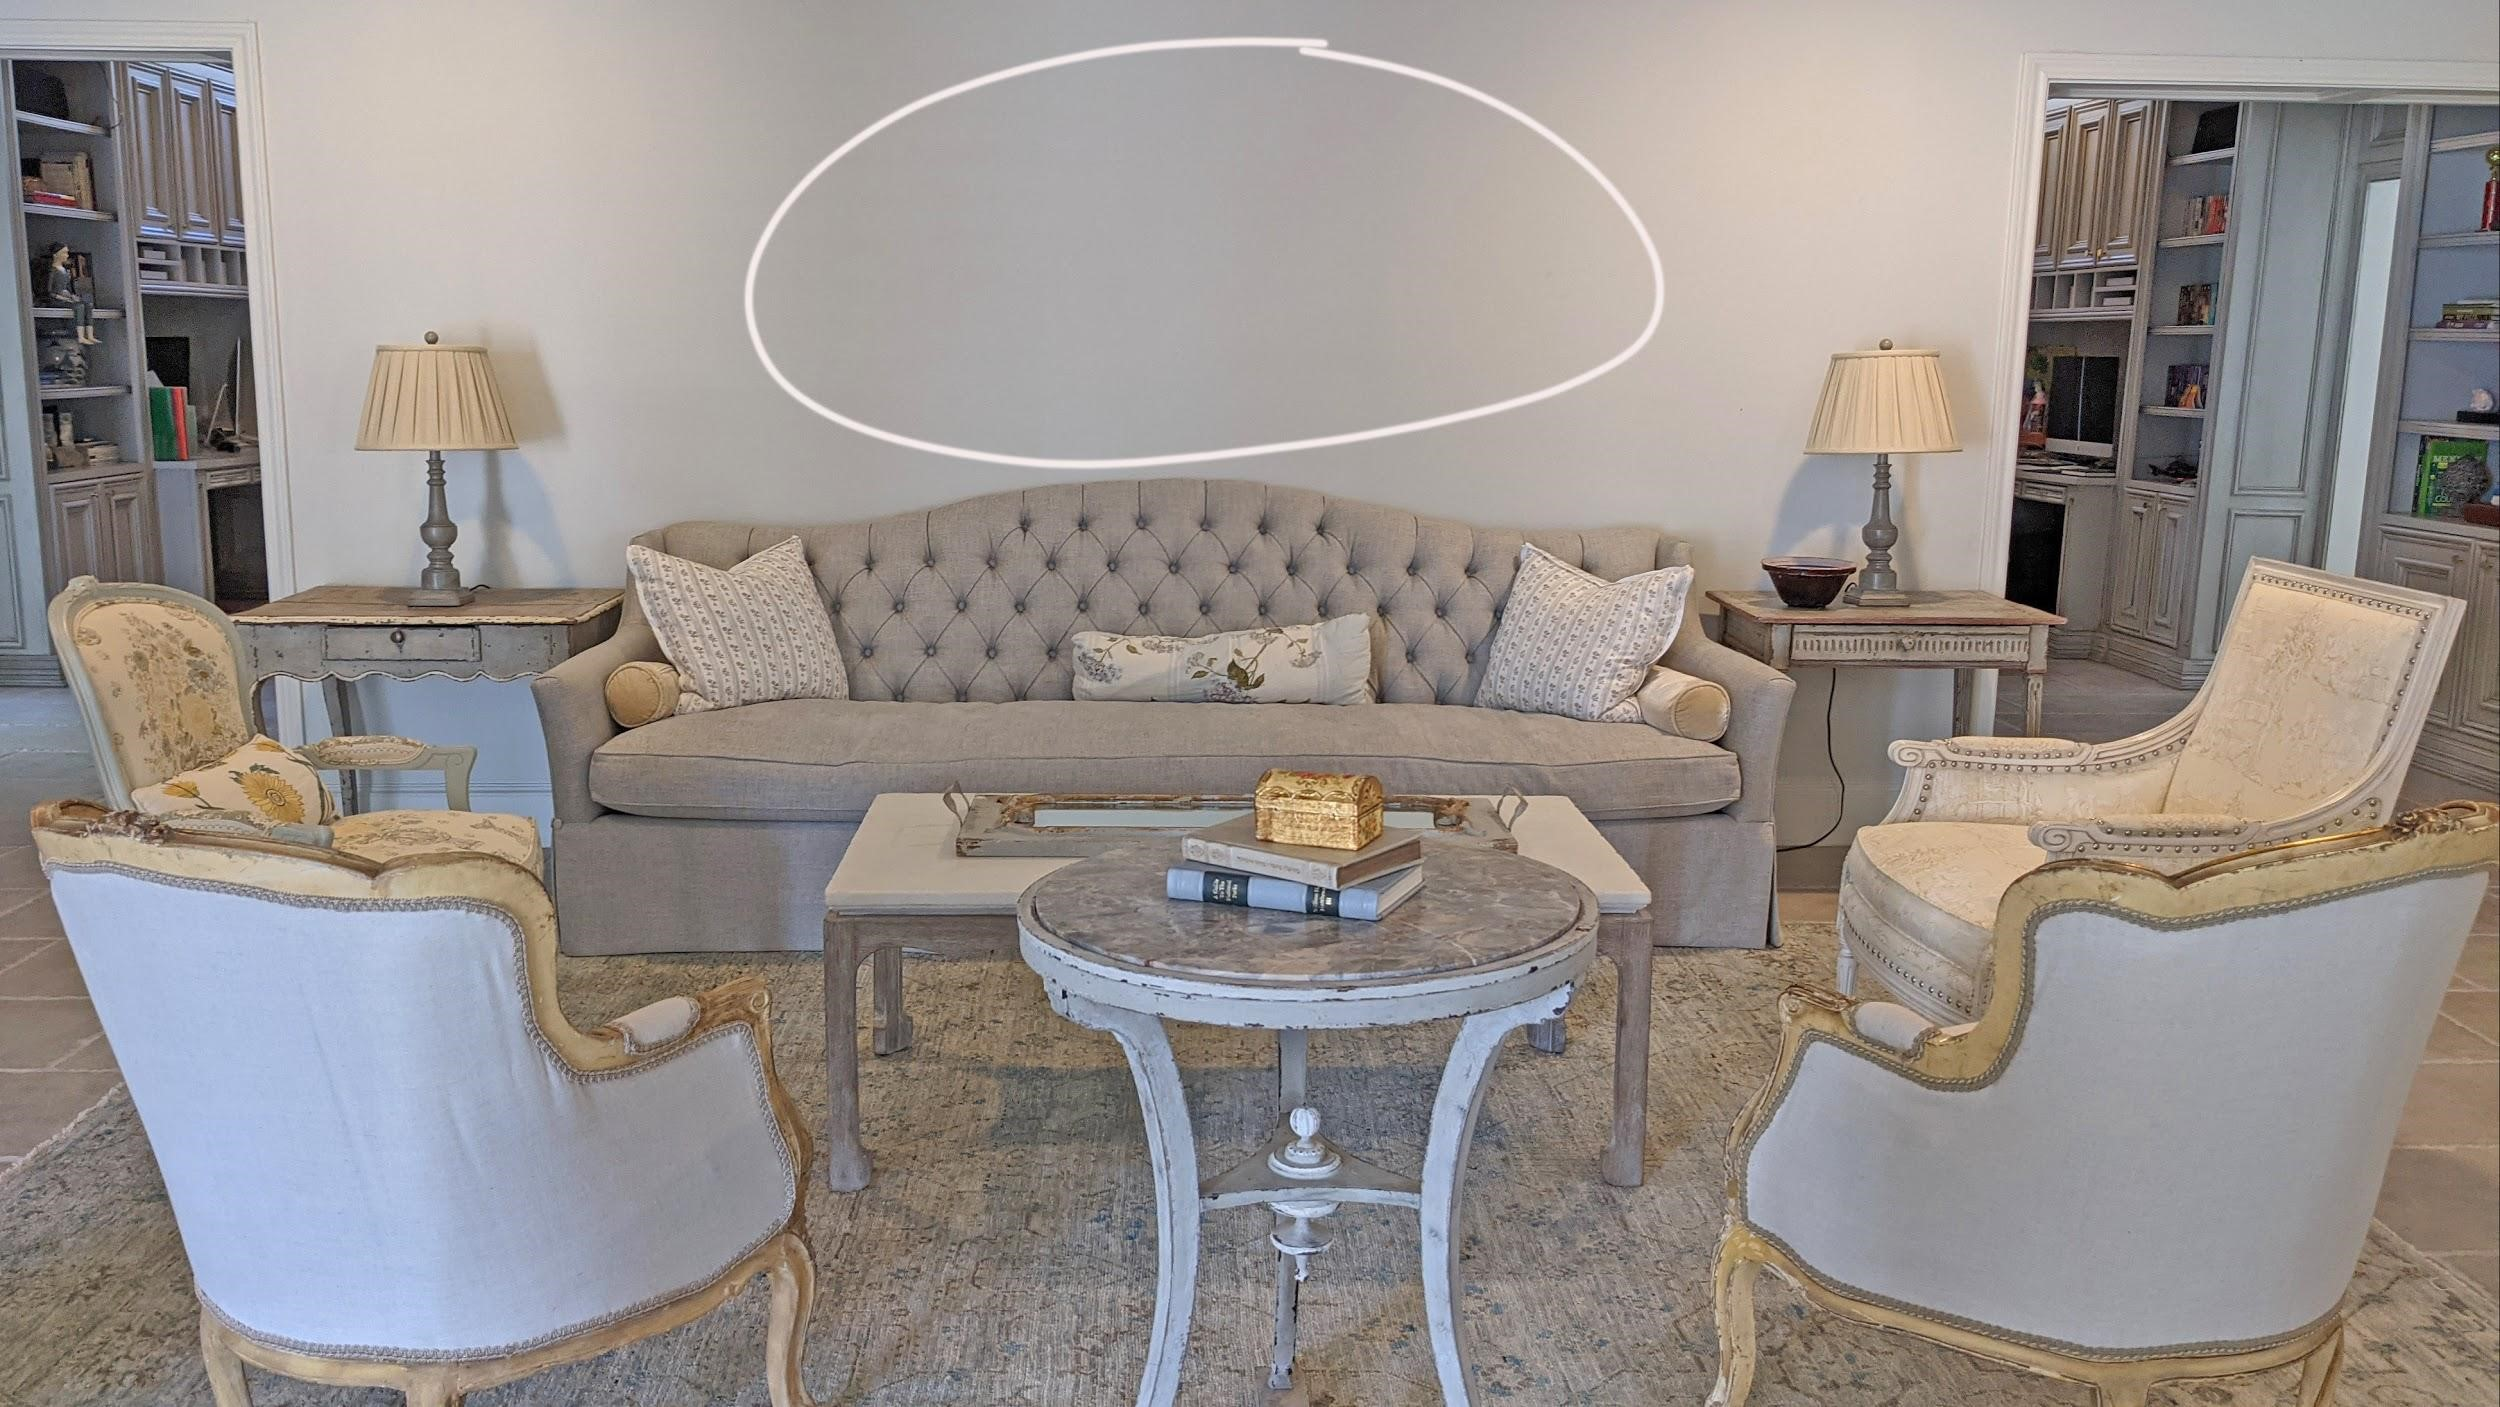 Amitha's living room with long gray French country sofa needs artwork on the wall